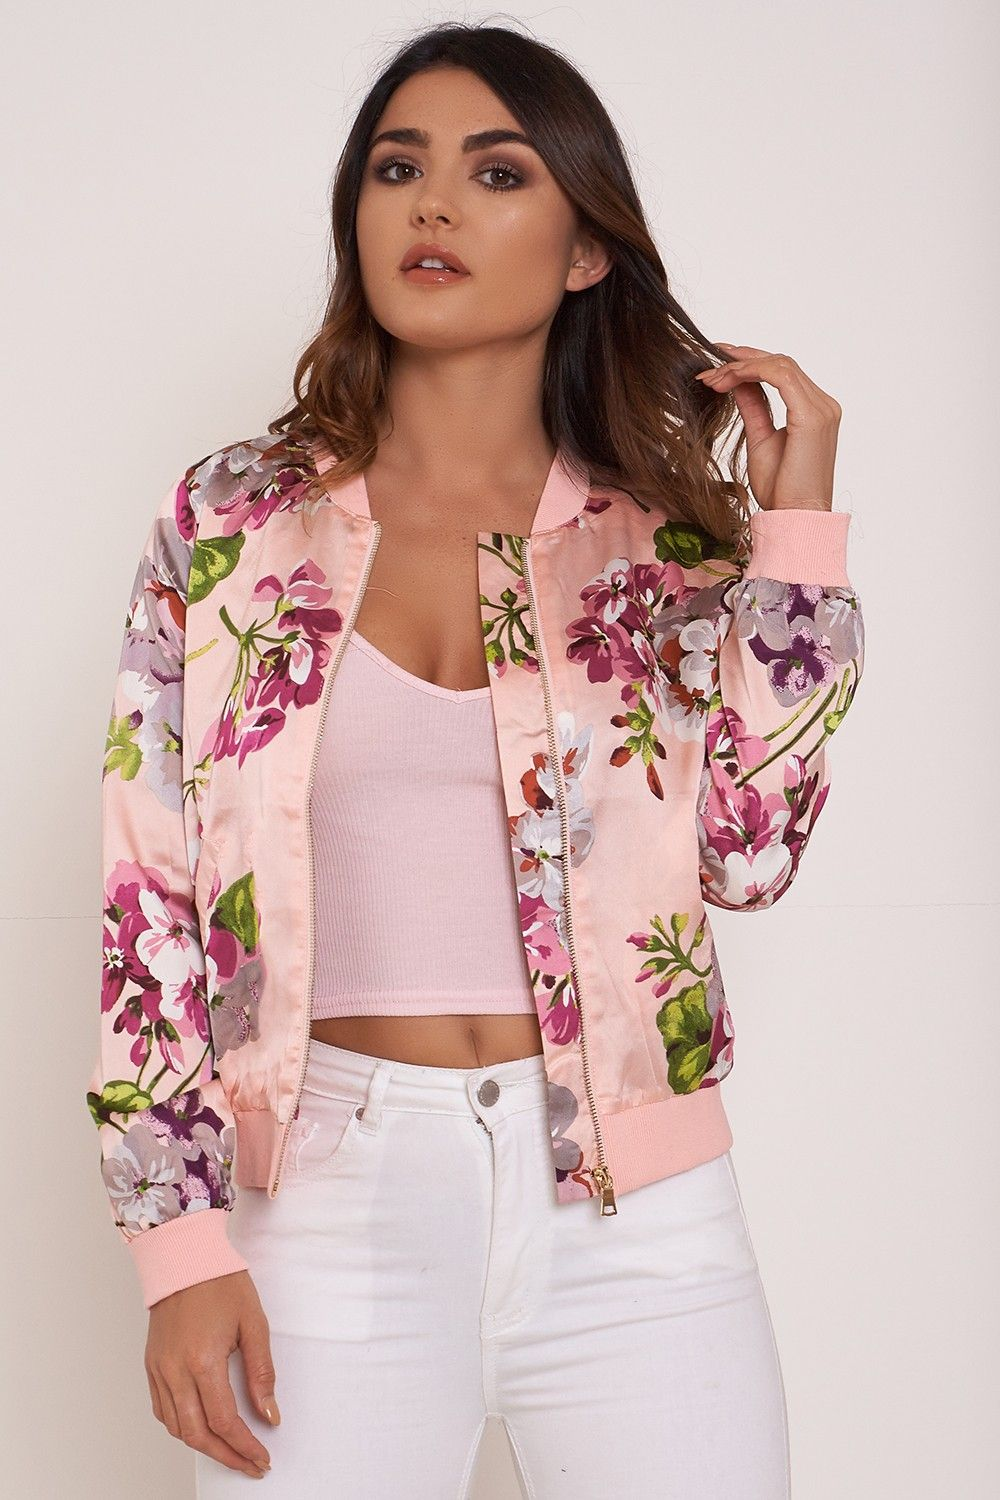 Flower Bomb Floral Bomber Jacket Pink - Coats & Jackets - Shop by ...